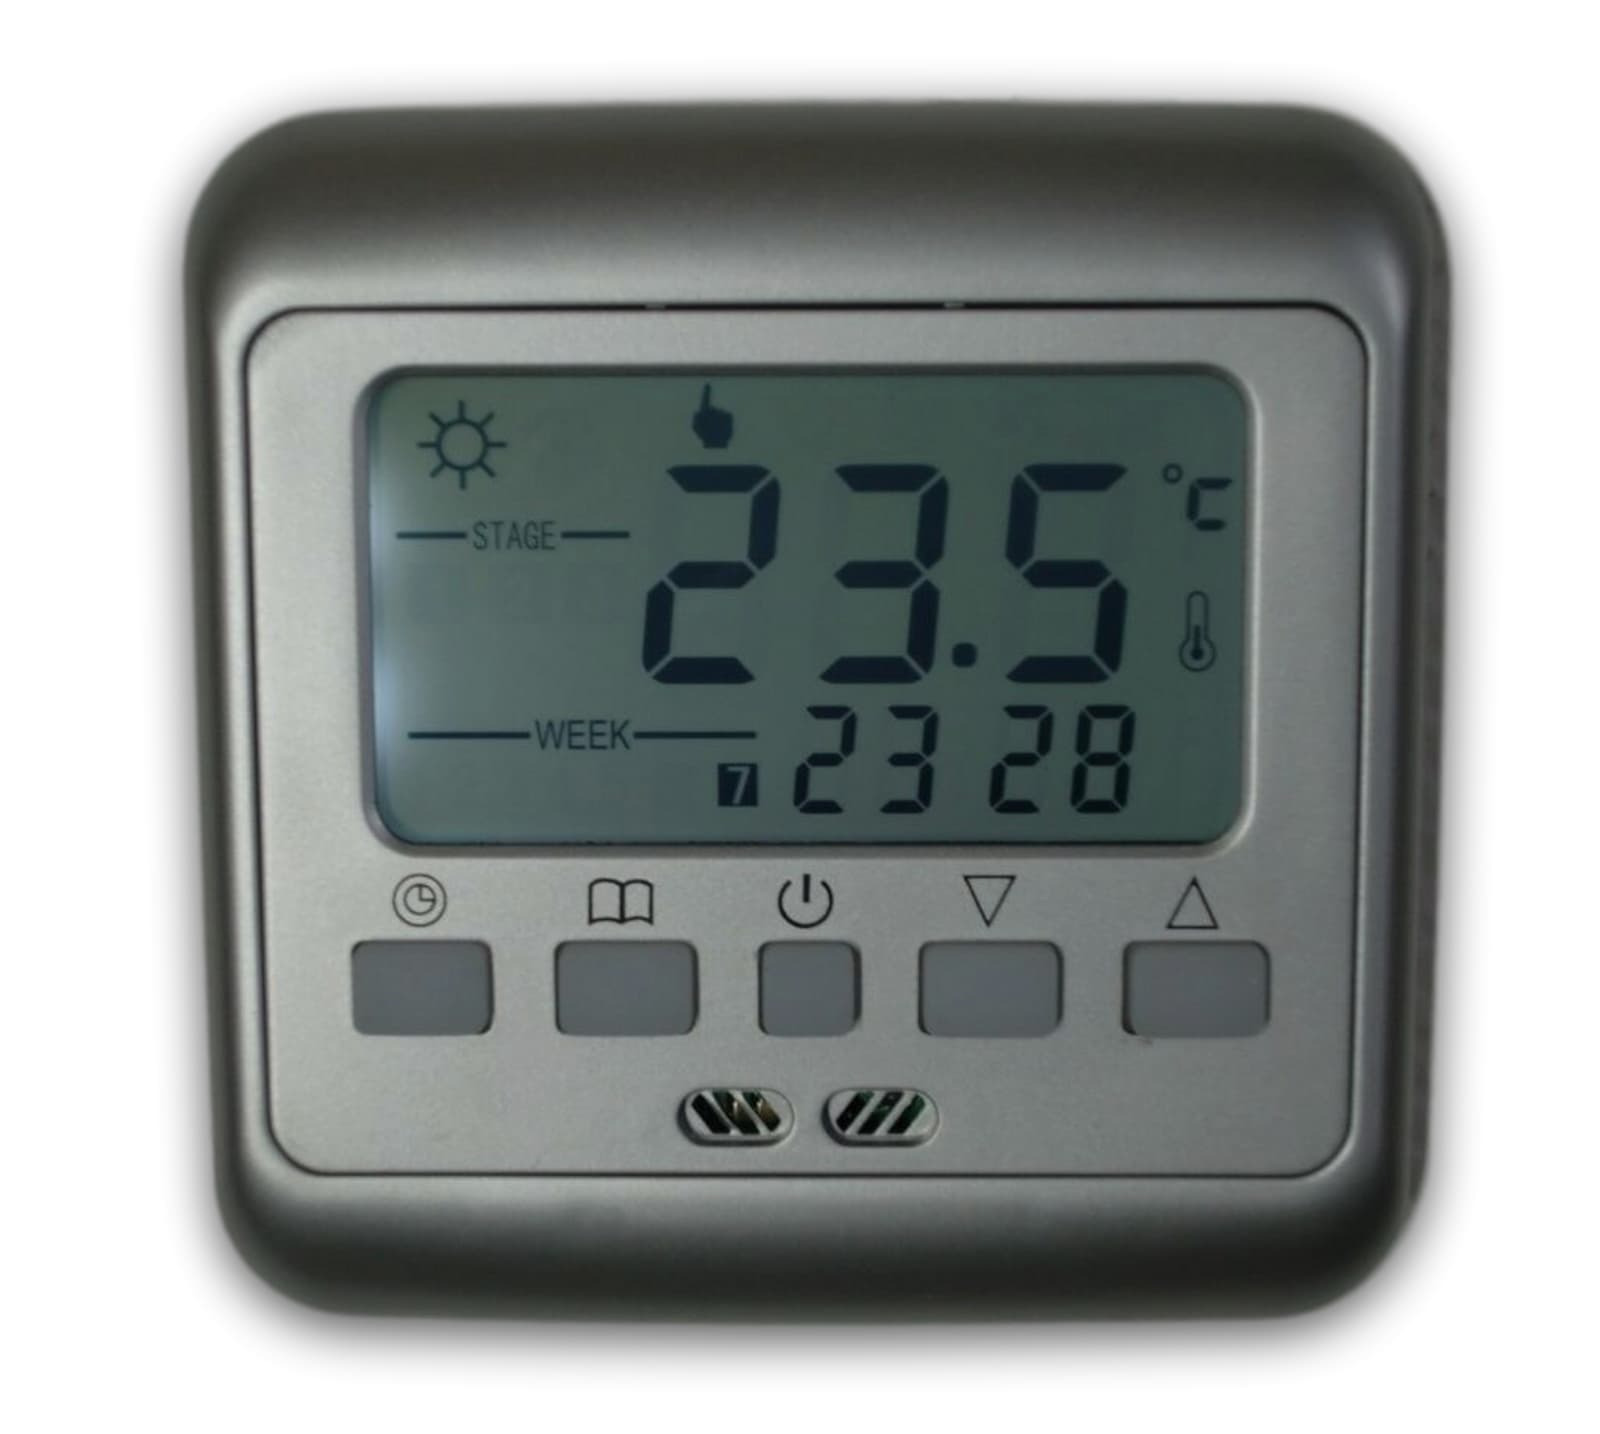 digital thermostat silber raumthermostat fu bodenheizung wochenprogramm z860 eur 16 99. Black Bedroom Furniture Sets. Home Design Ideas